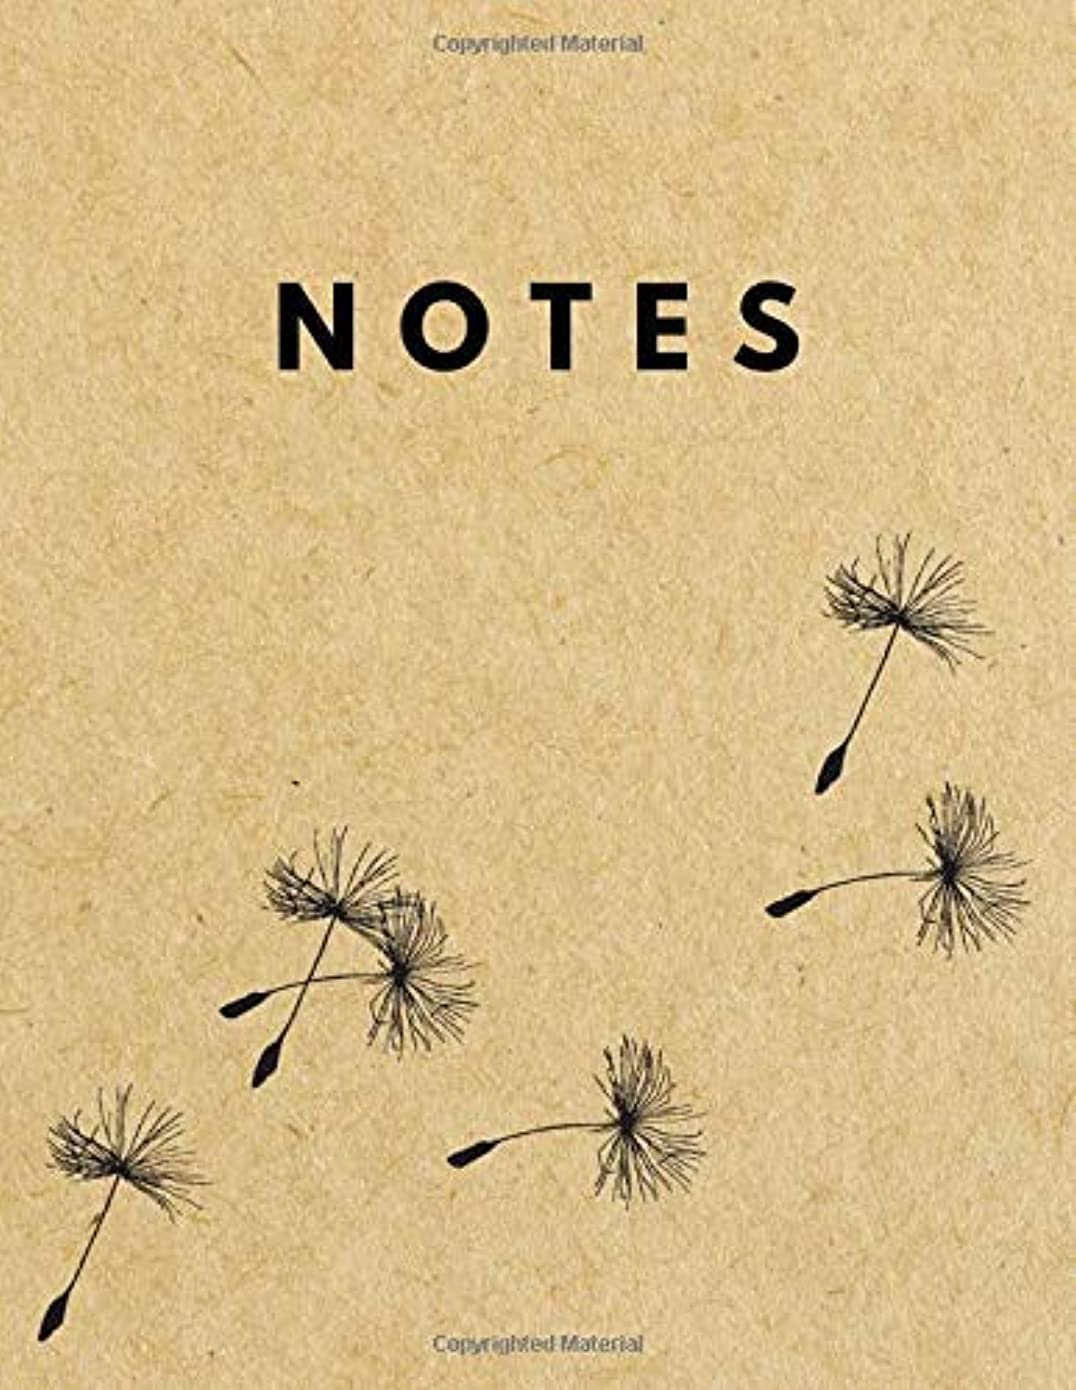 Notes: Unlined Plain Retro Notebook | Large (8.5 x 11 inches) Letter Size | 120 unruled pages | Dandelion Blowball Brown Paper Soft Cover [並行輸入品]